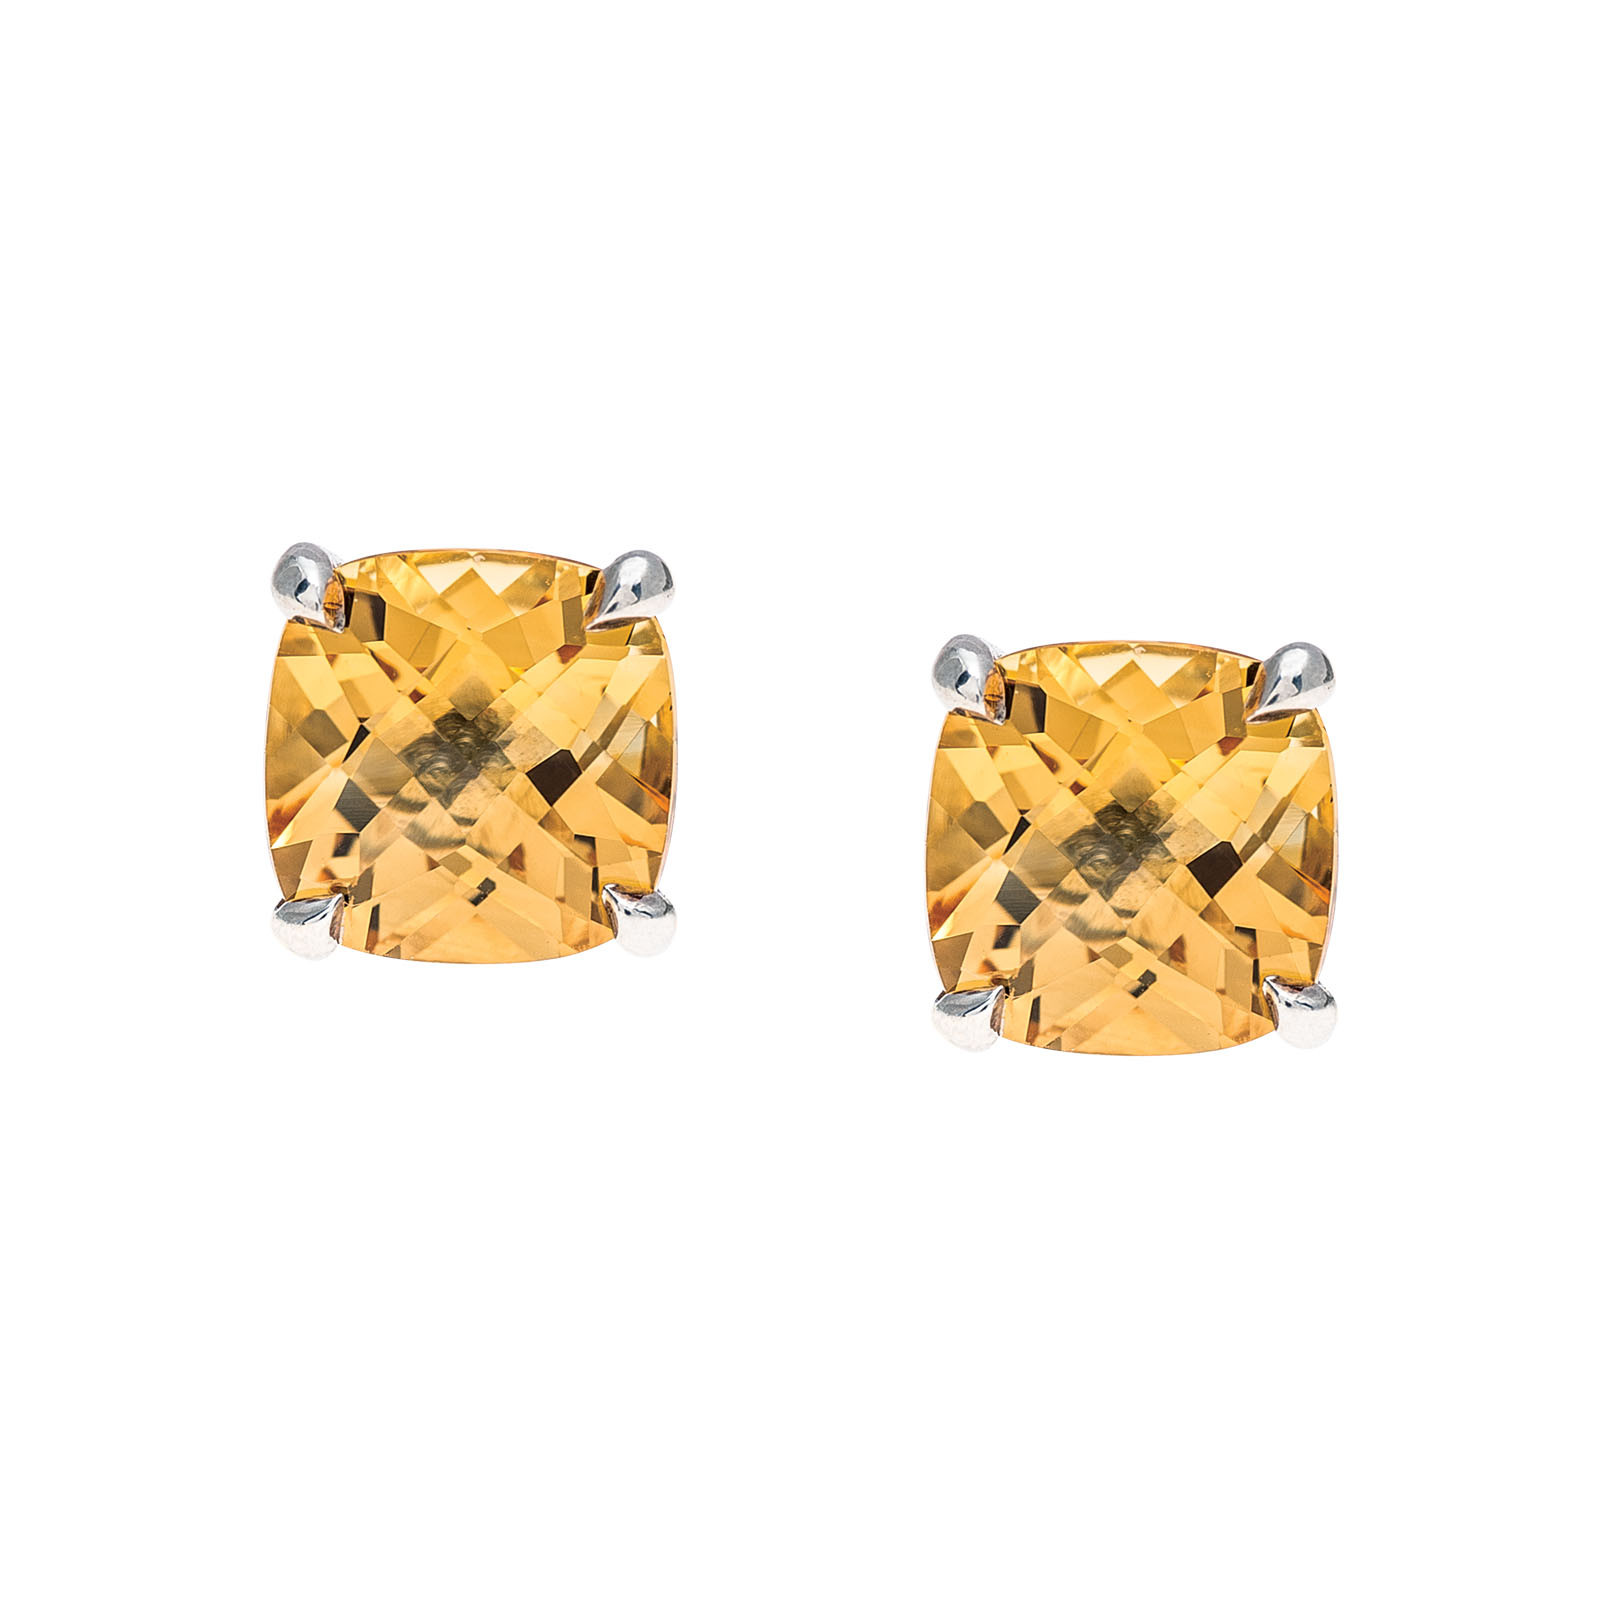 Vintage Tiffany & Co. Sparklers Citrine Earrings